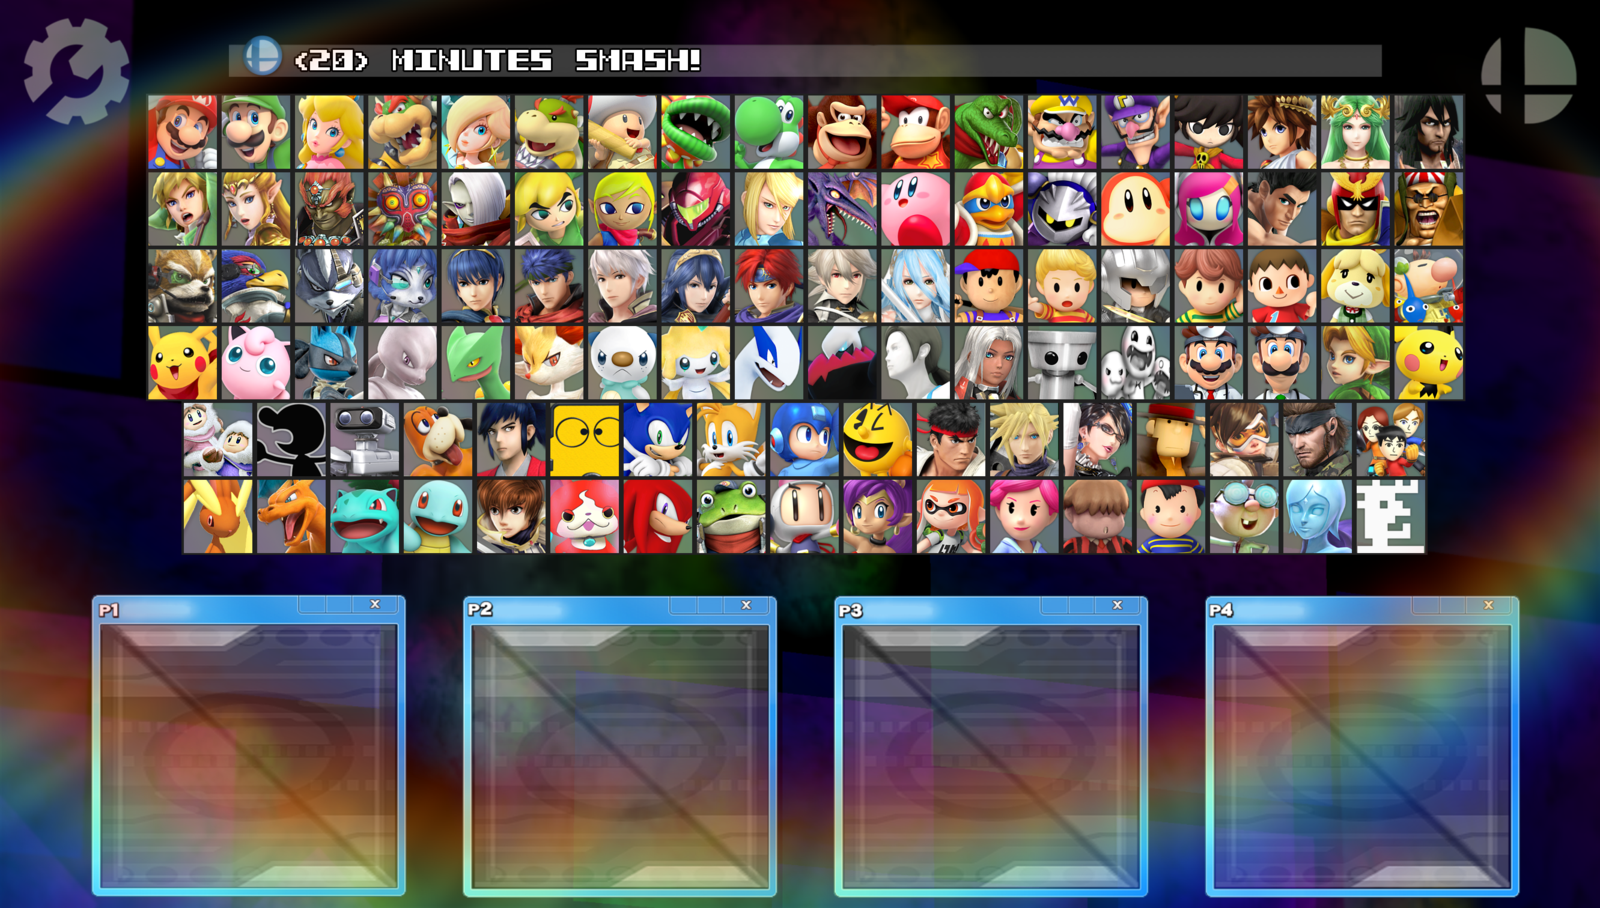 image super smash bros nx roster update v8 with dlcs by